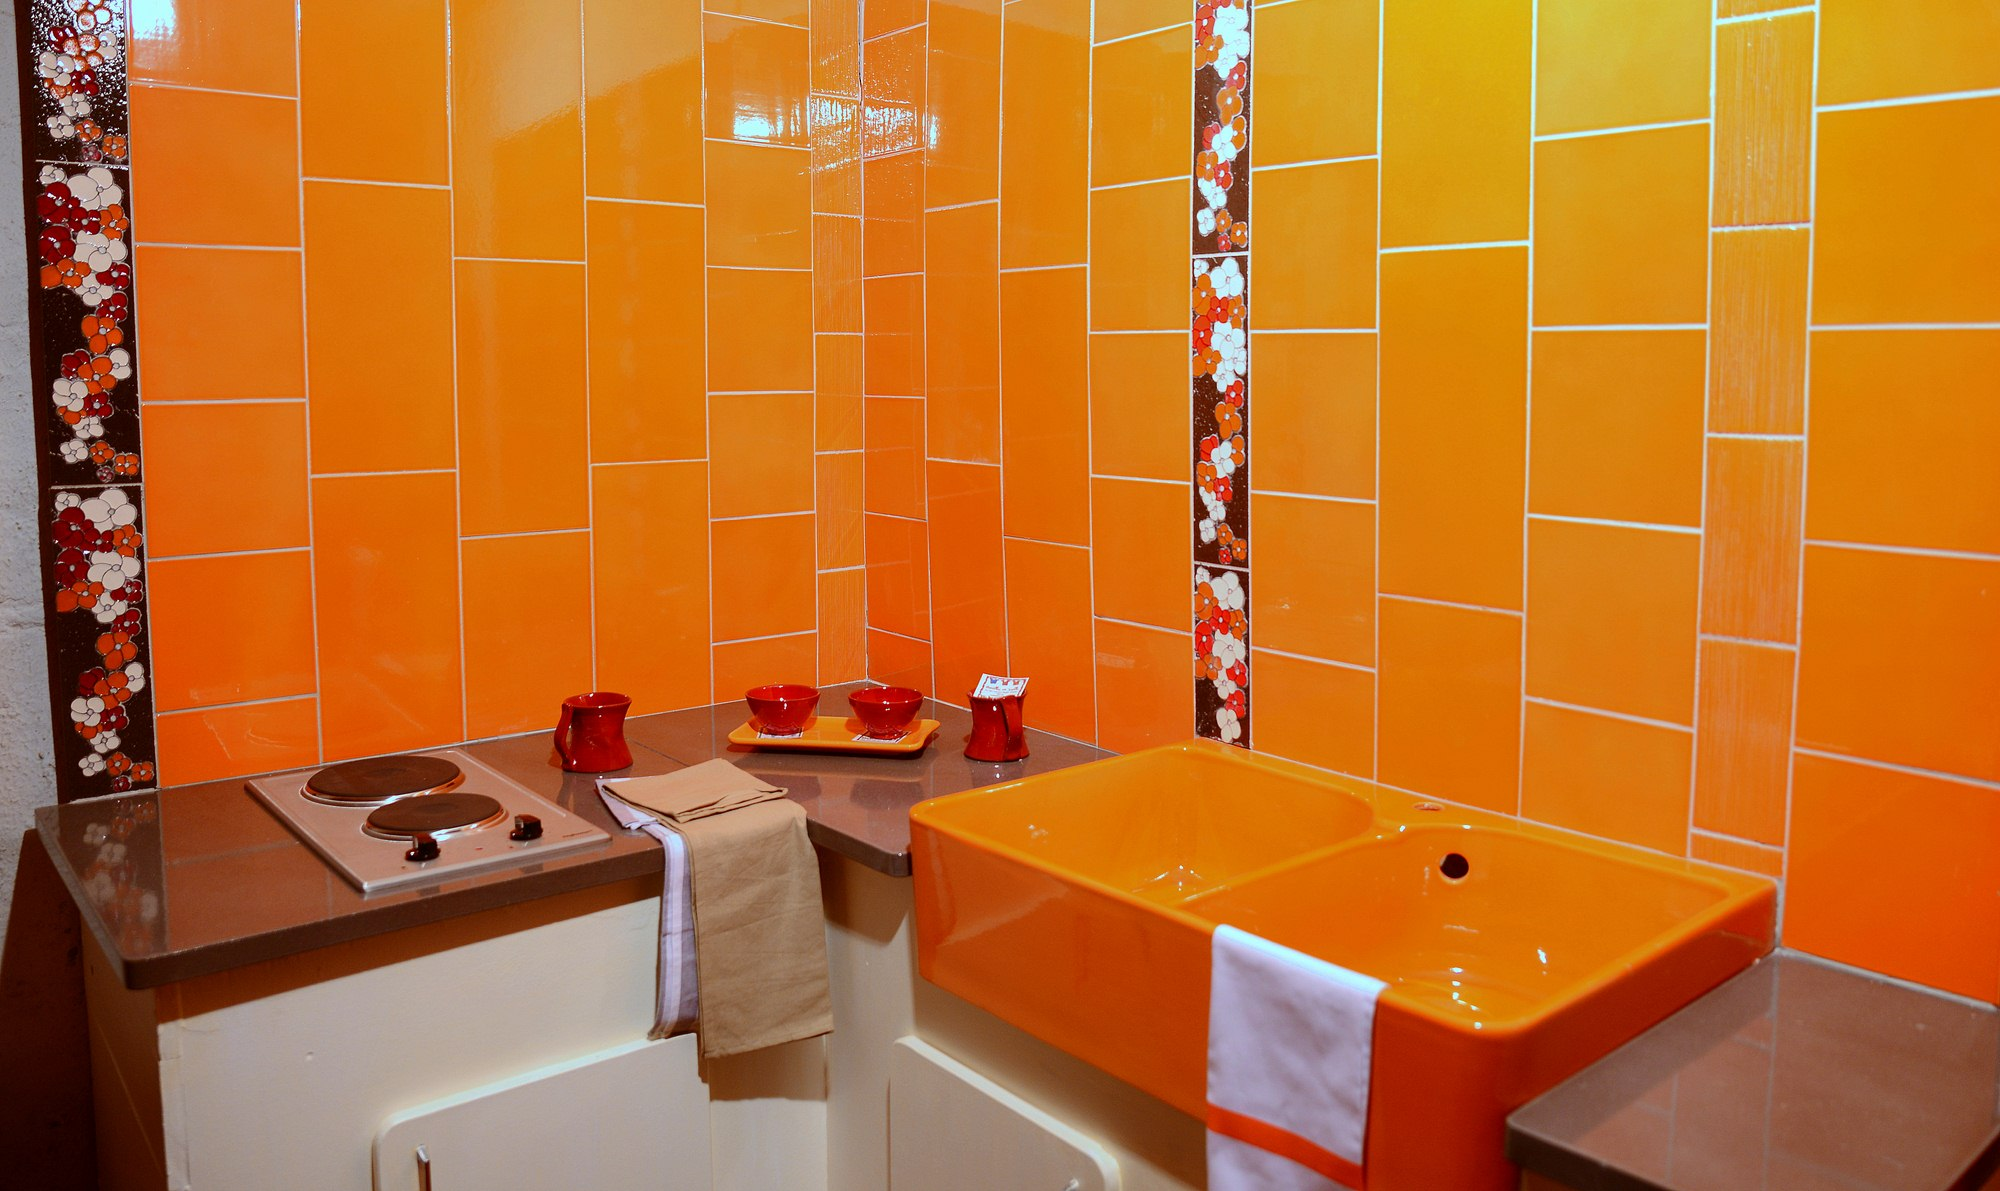 Carrelage salle de bain orange photos de design d for Salle bain orange